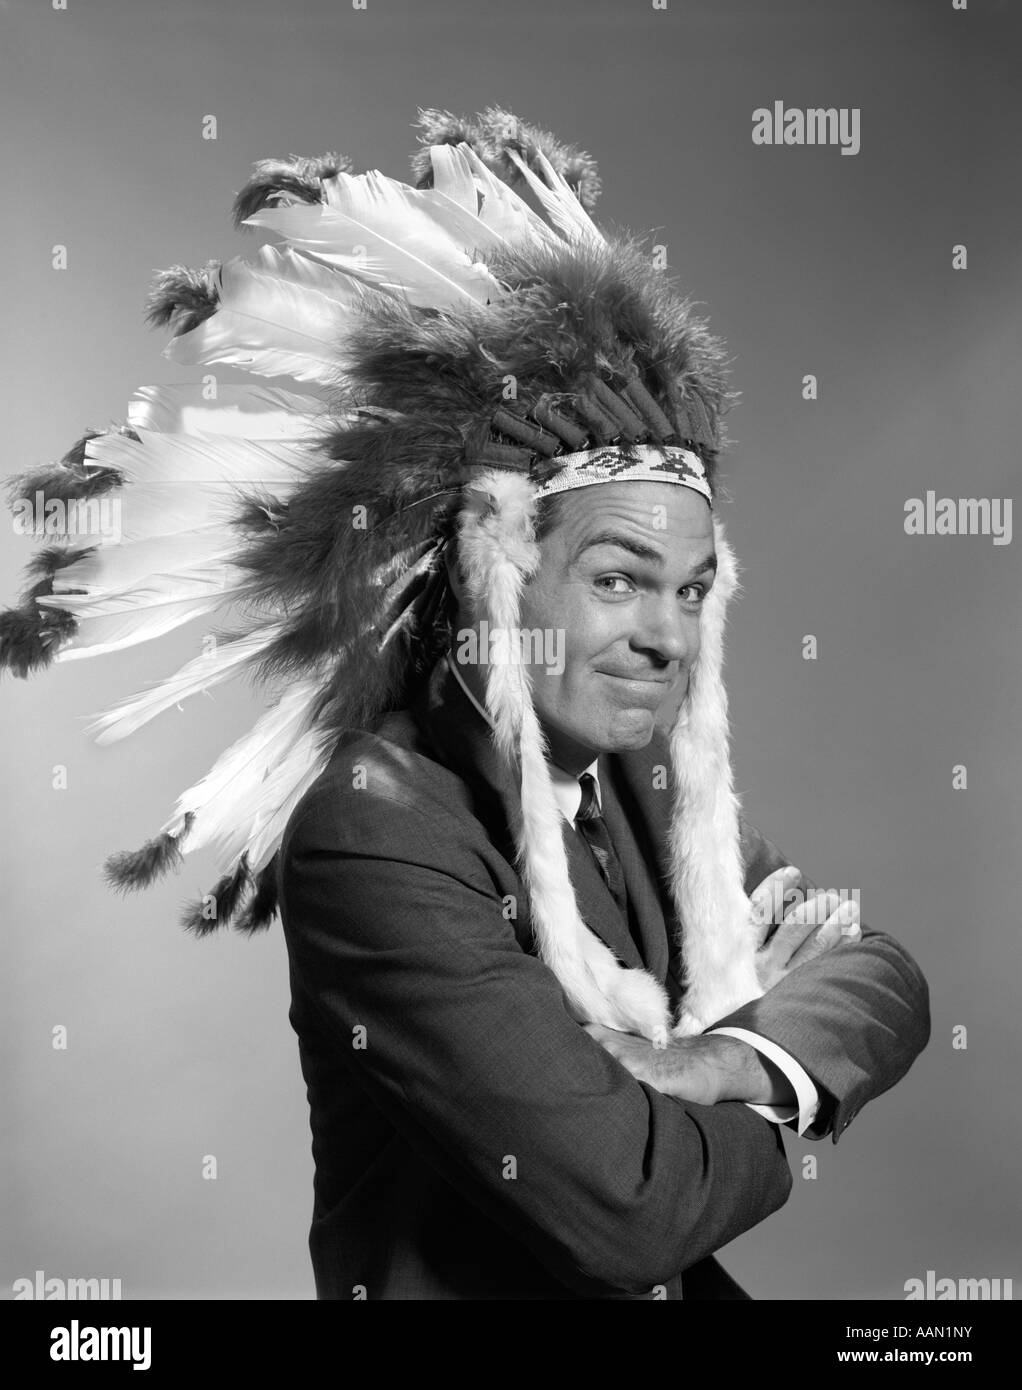 1960s PORTRAIT MAN WEARING INDIAN CHIEF FEATHERED HEADDRESS - Stock Image